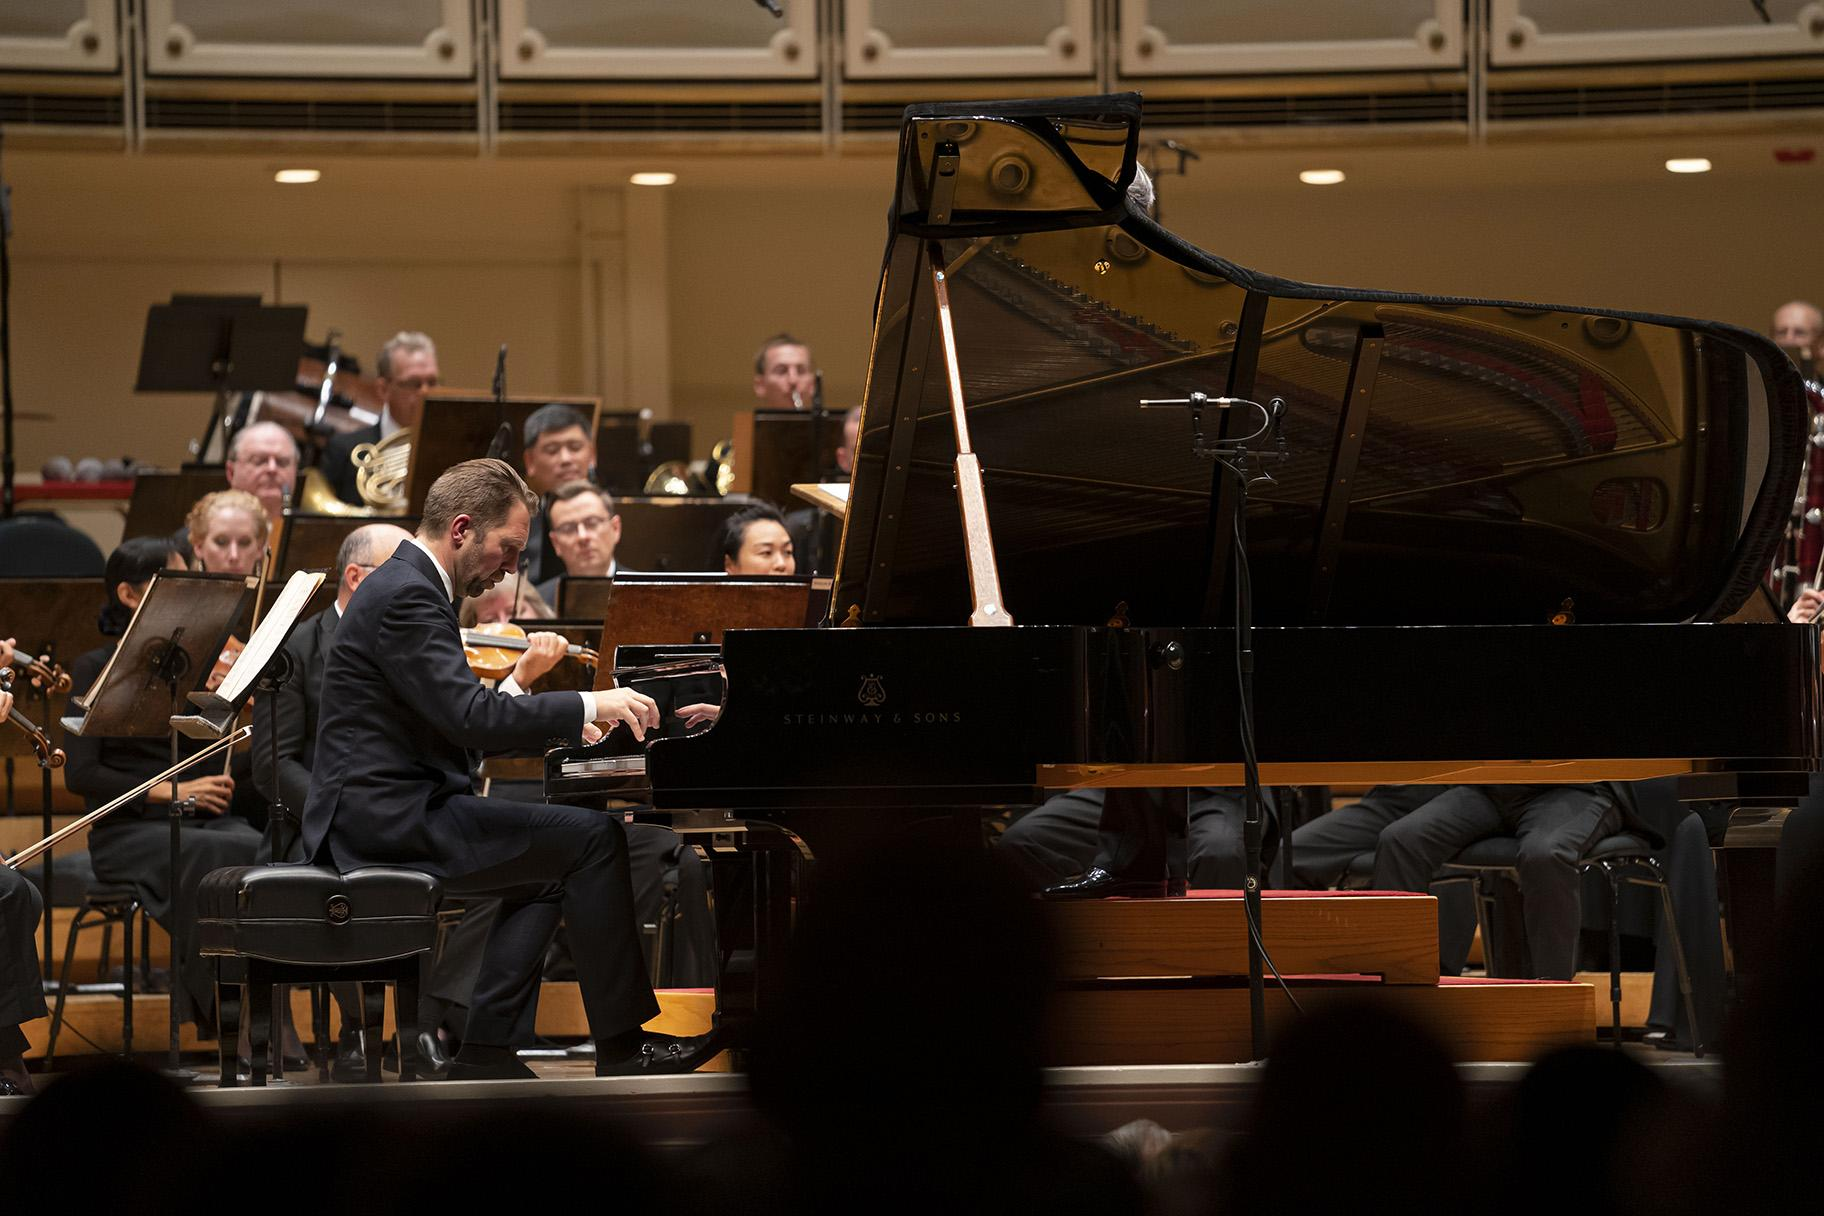 Leif Ove Andsnes performs Grieg's Piano Concerto with the Chicago Symphony Orchestra led by CSO Music Director Riccardo Muti on Sept. 19, 2019, in Orchestra Hall. (Photo by Todd Rosenberg)